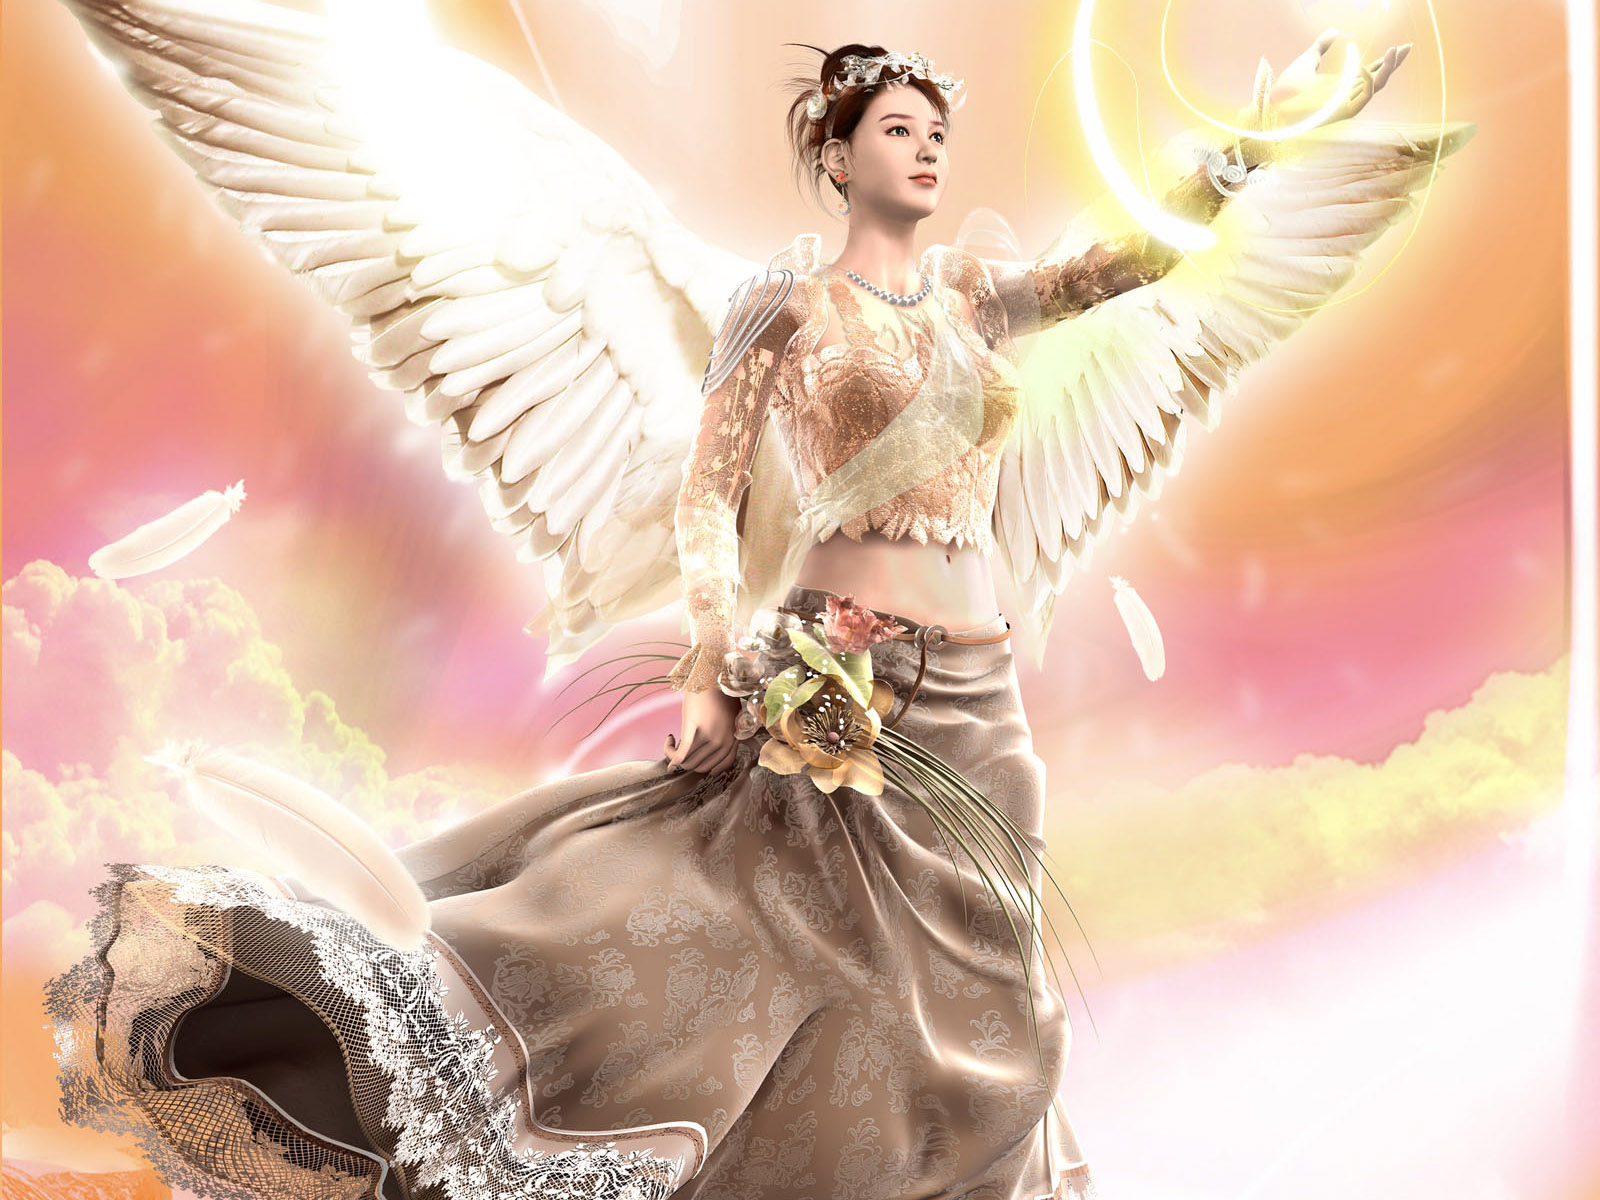 Millions of pictures beautiful angels wallpapers - Angel girl wallpaper ...